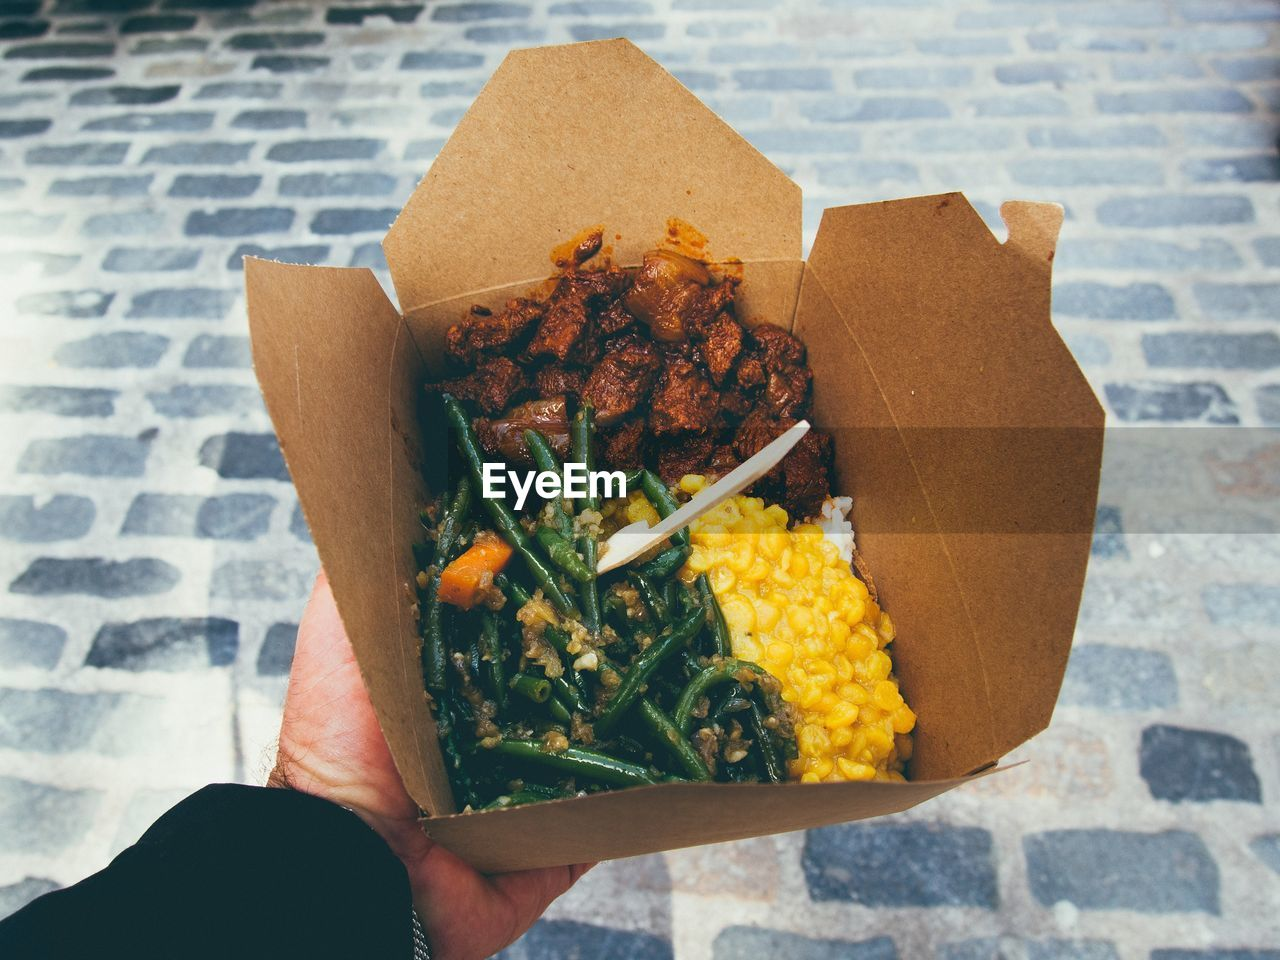 Cropped Image Of Hand Holding Lunch In Box On Street